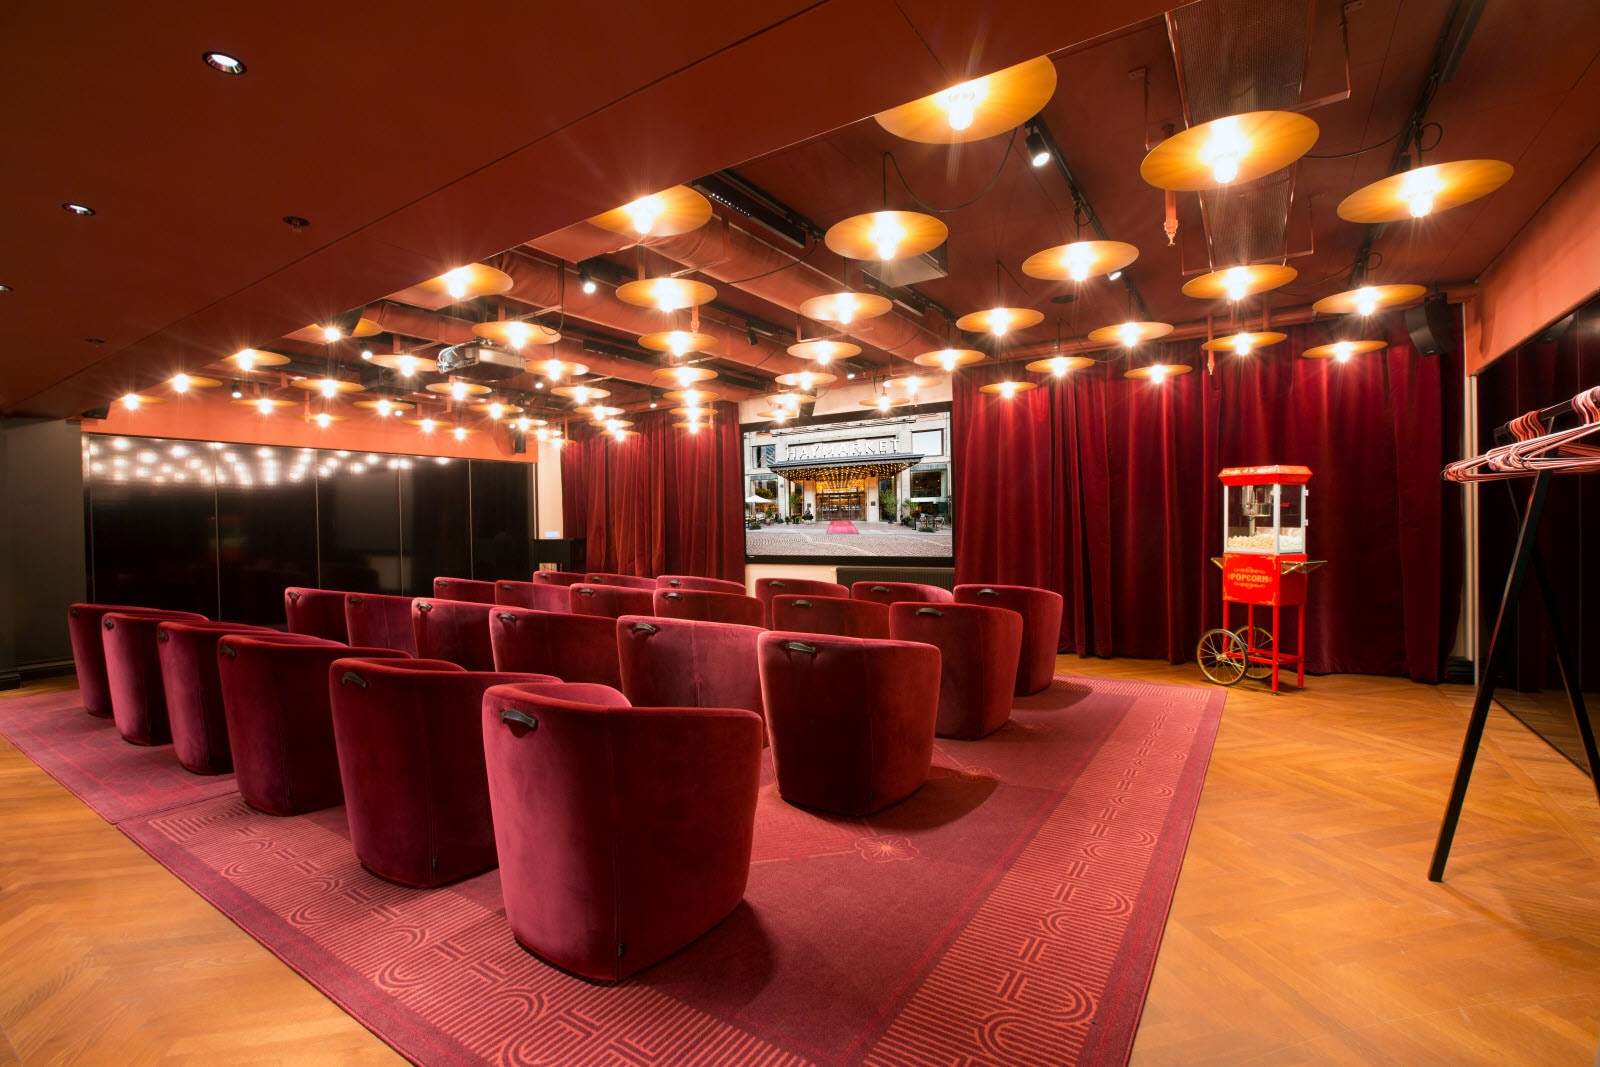 Haymarket-By-Scandic-Conference-Cinema-Room.jpg